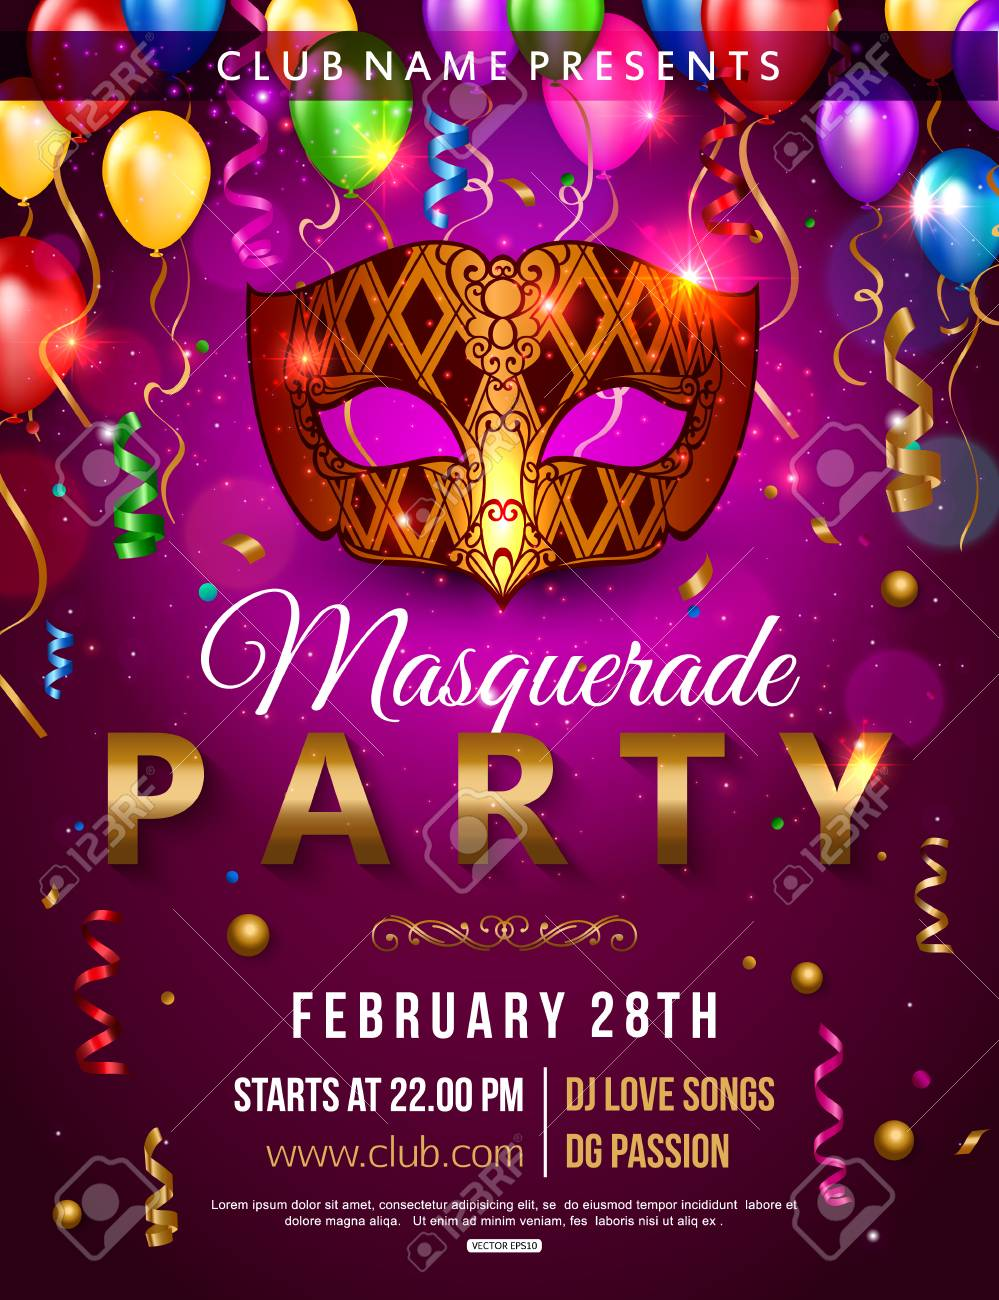 masquerade party flyer design with carnival mask balloon confetti